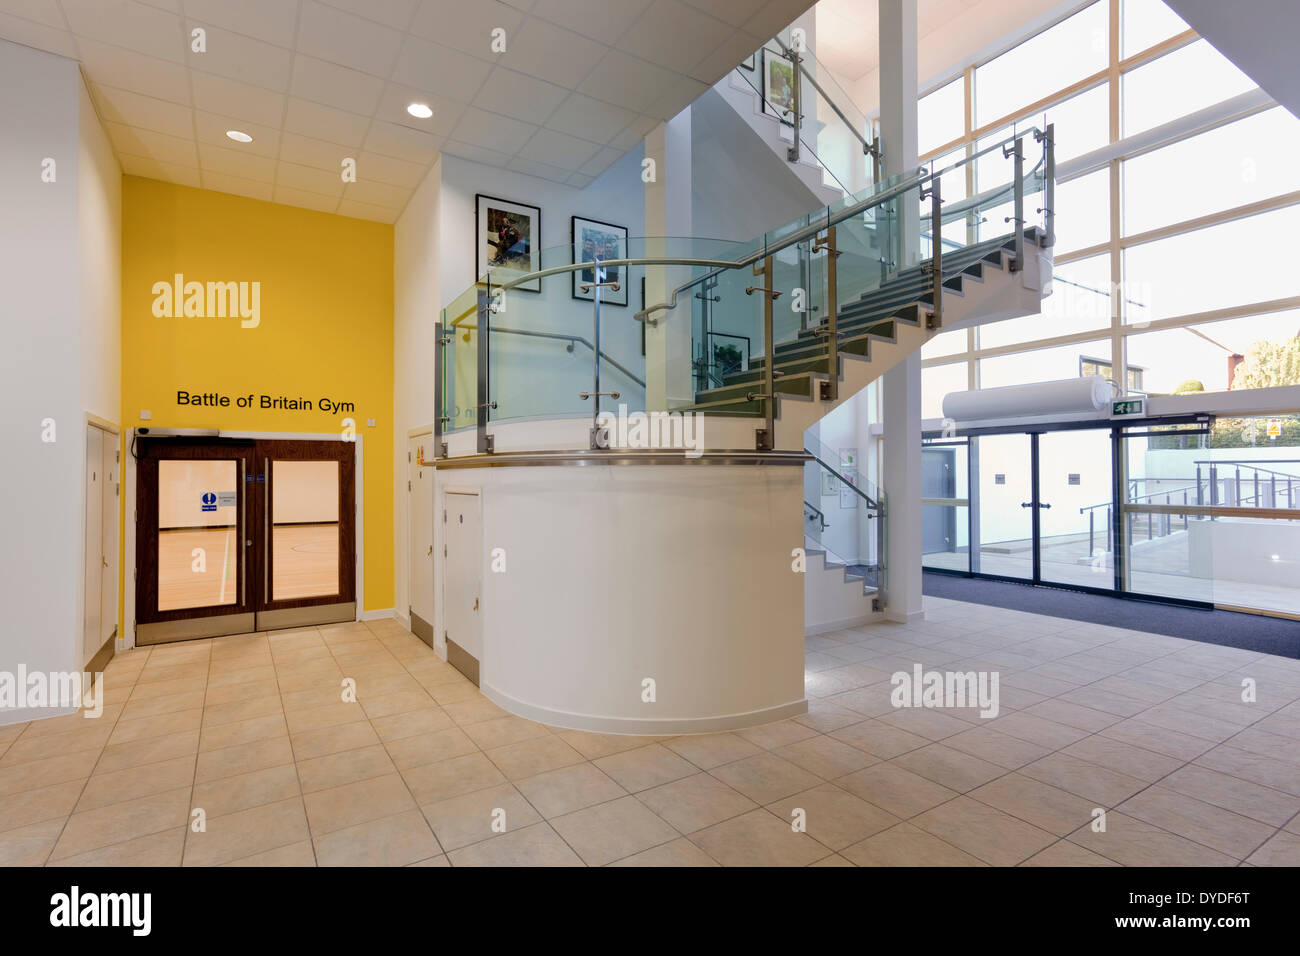 Interior main entrance stairs and doors to Battle of Britain Gym at Help for Heroes Rehabilitation Complex in Headley Court. & Interior main entrance stairs and doors to Battle of Britain Gym at ...